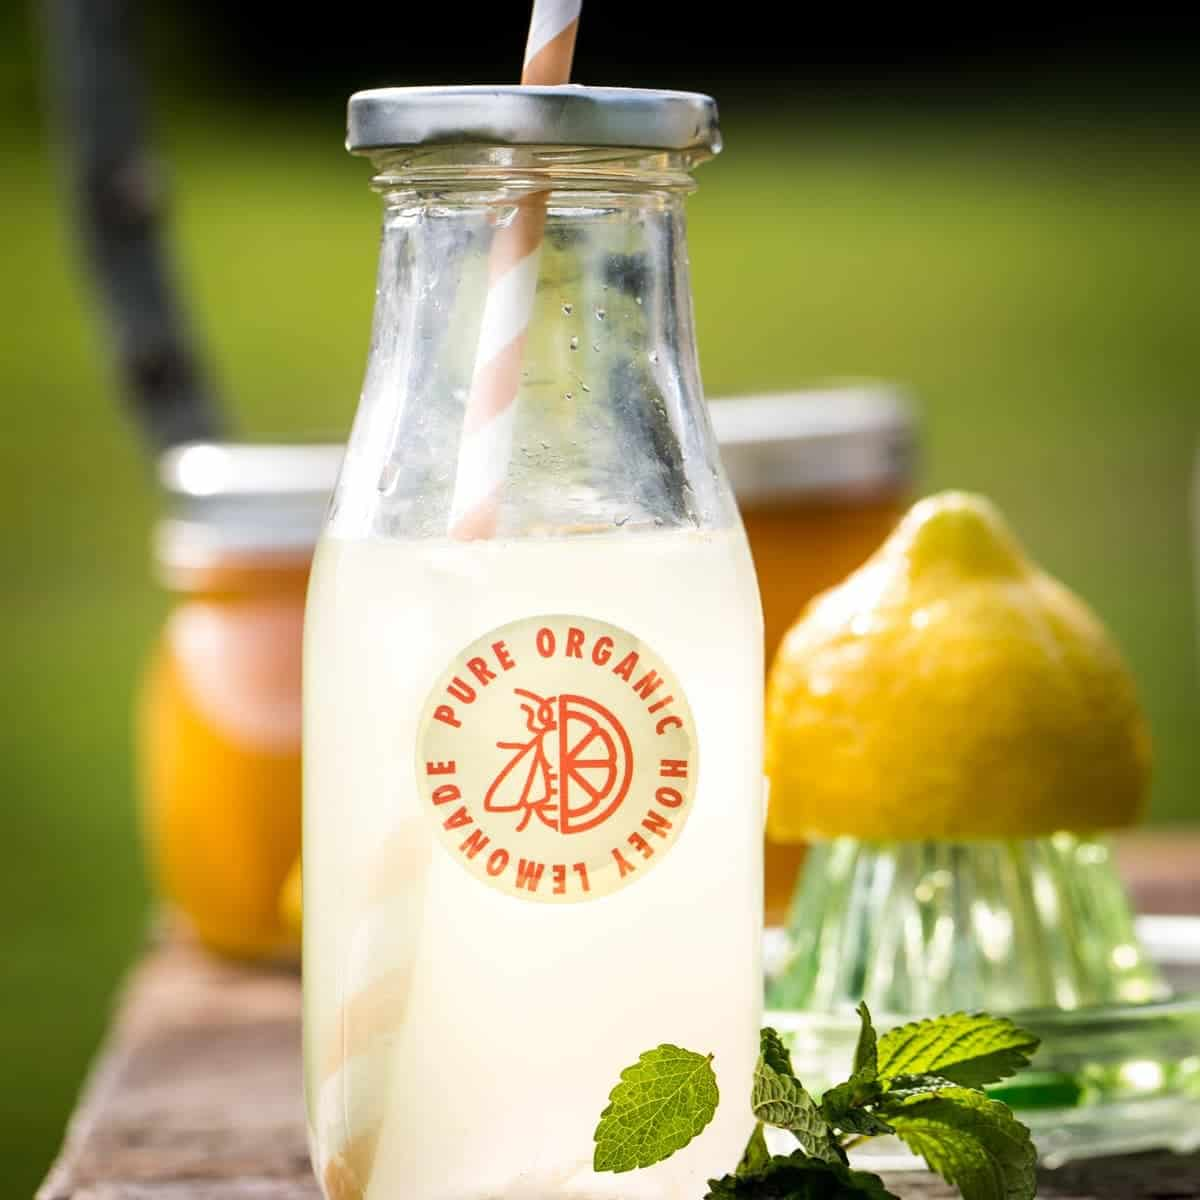 Lifestyle Bee Farm - Honey Mint Peach Lemonade Recipe - Kids Lemonade Stand - Jena Carlin Photography - Little Rusted Ladle - Web-43